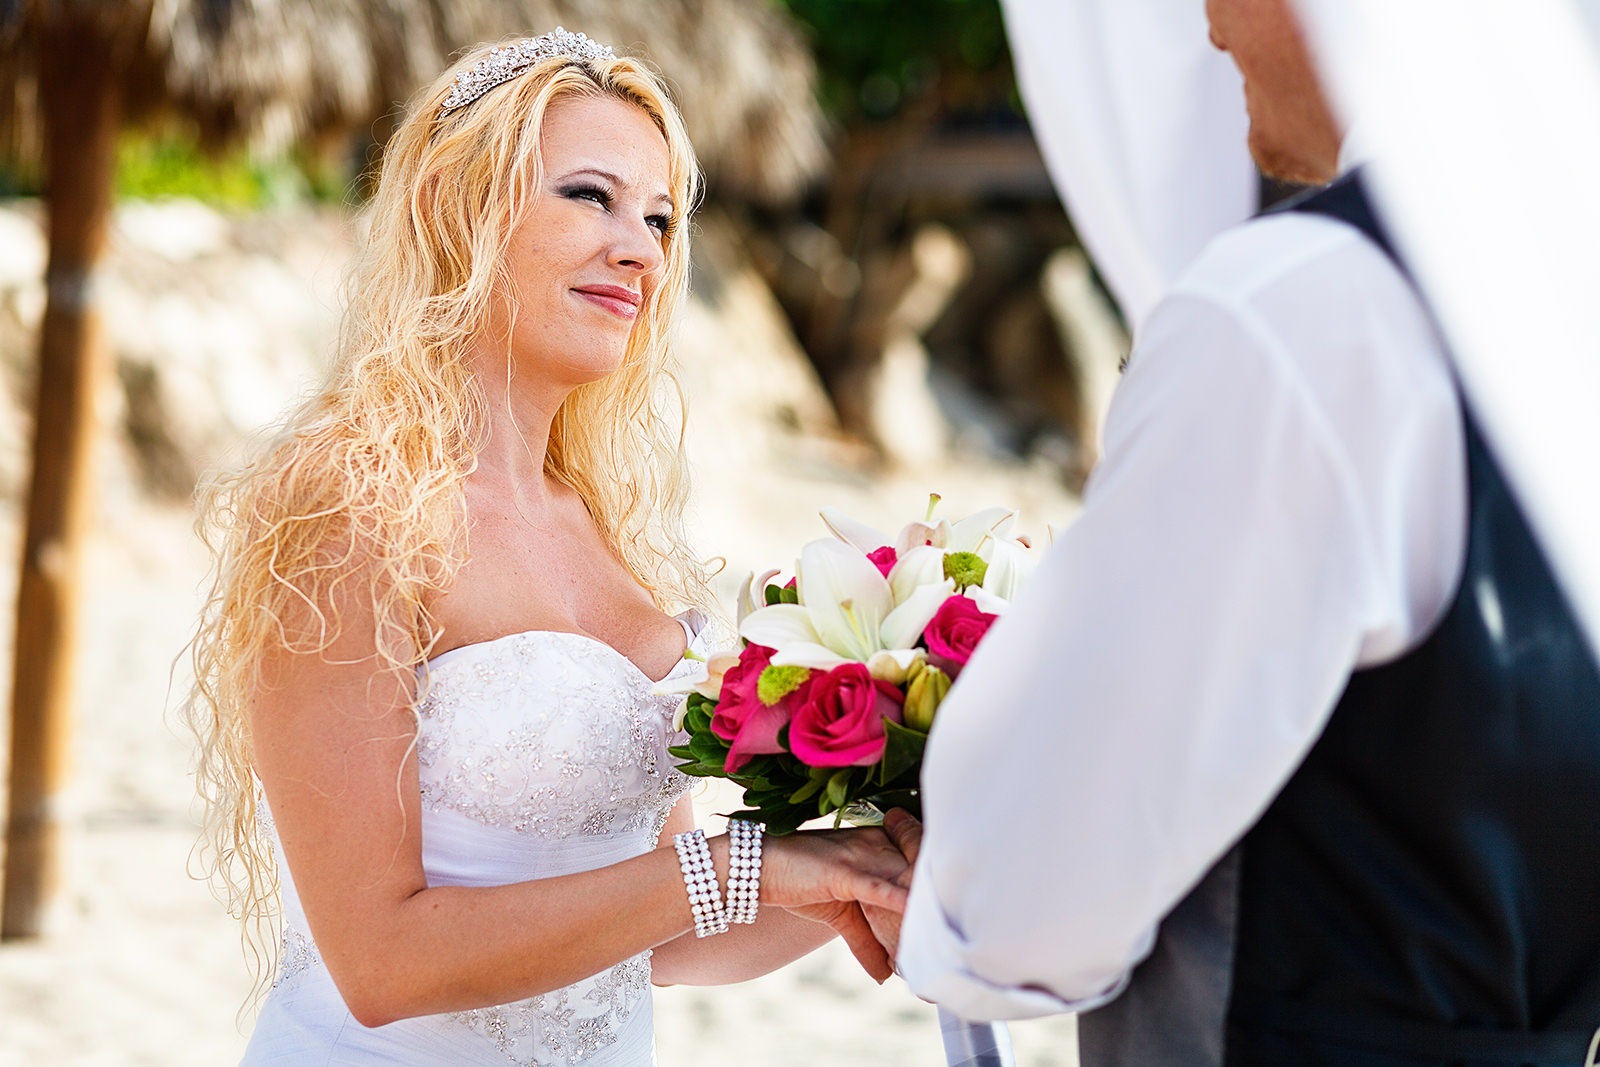 Bride with tiara looking at groom during ceremony on the beach